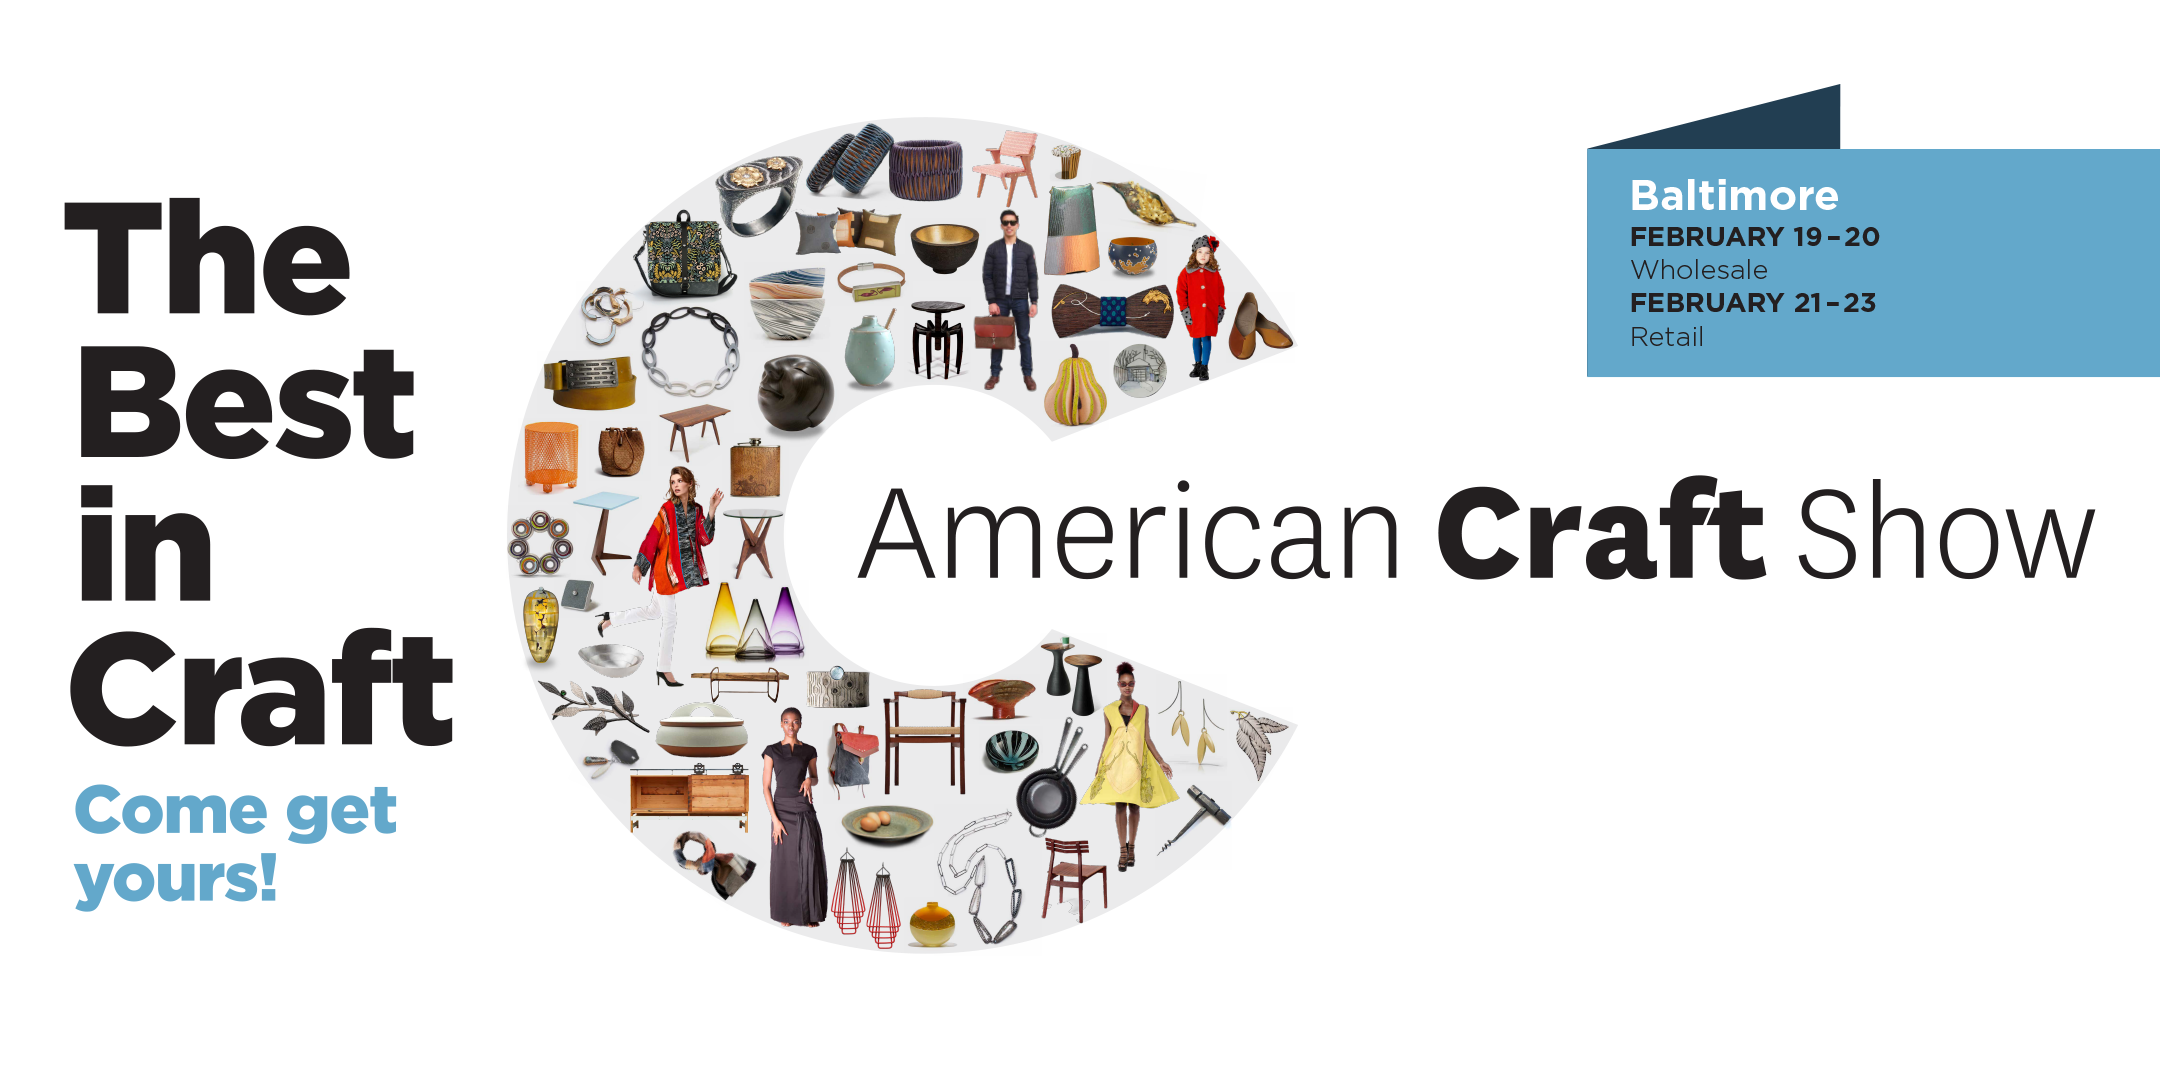 American Craft Show Baltimore 2020 American Craft Council